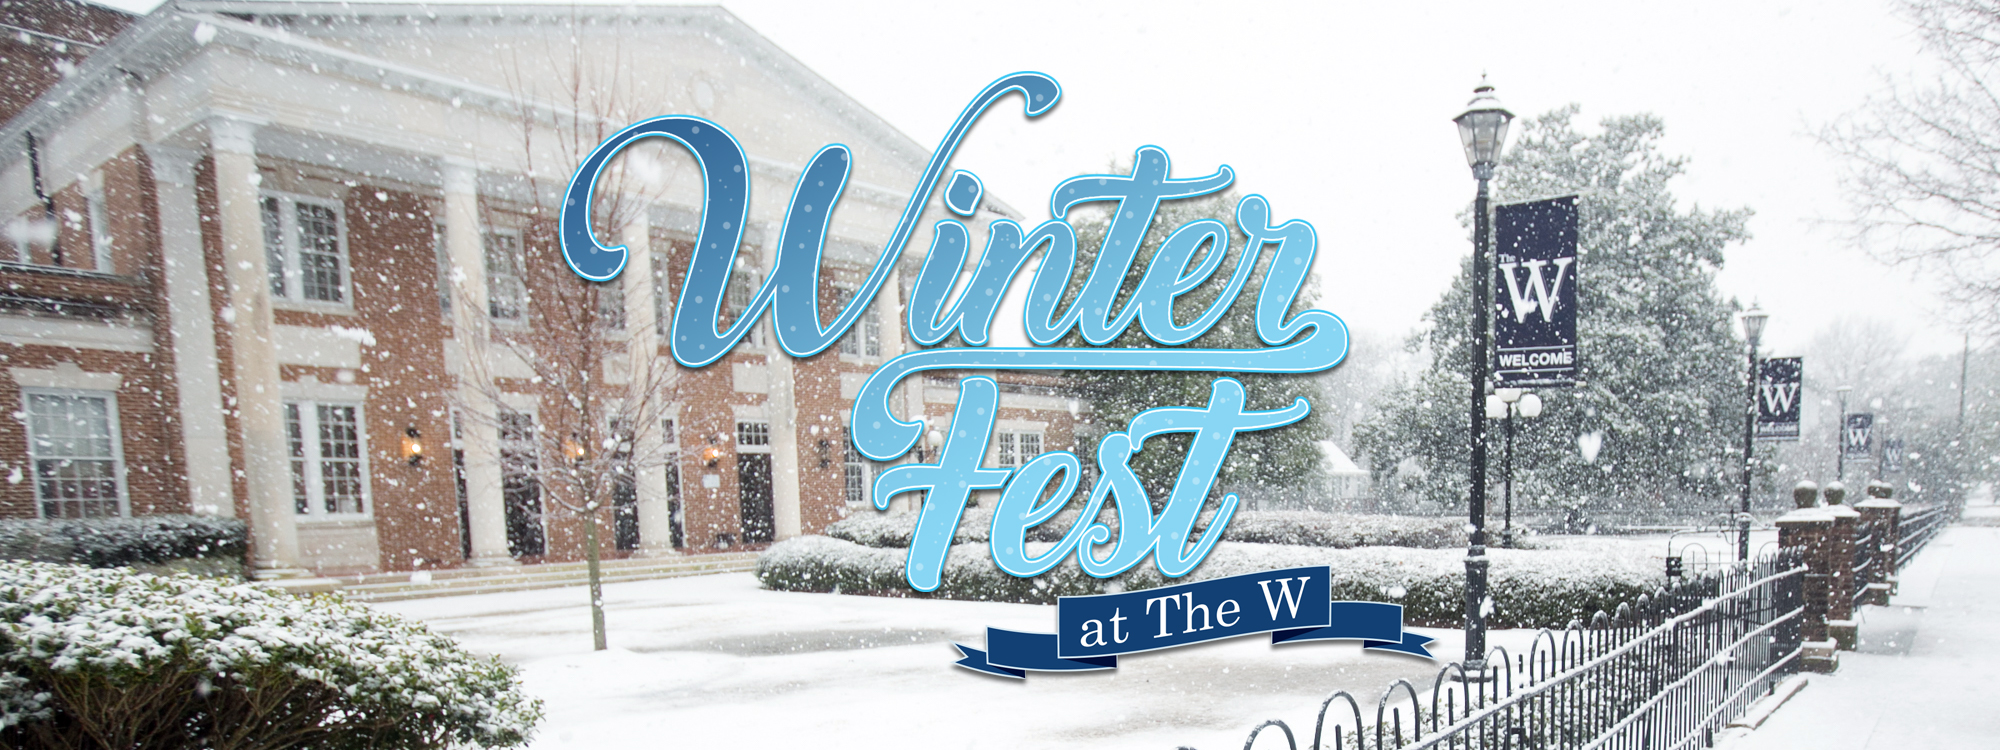 winterfest at the w